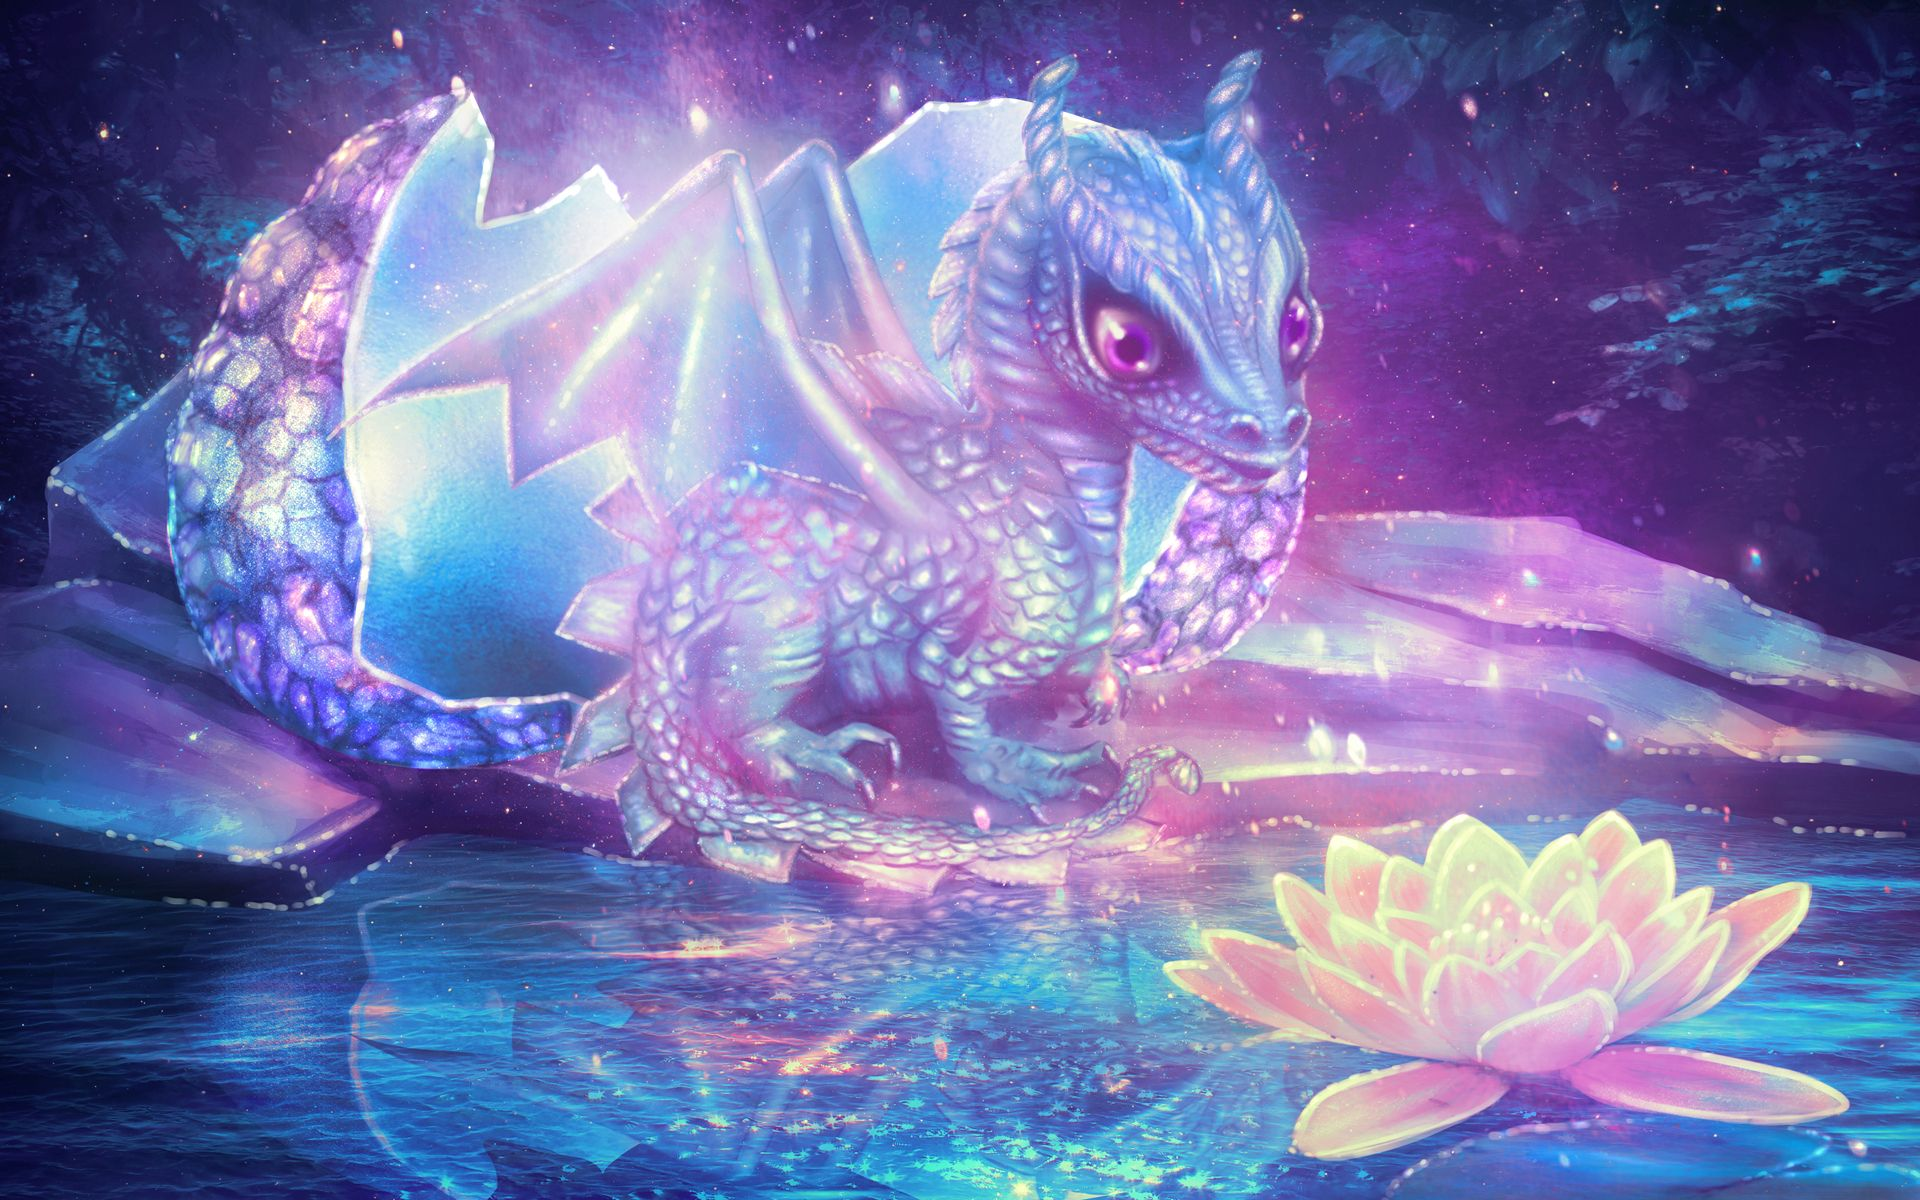 Fantasy Dragon Wallpaper Dragon pictures, Fantasy